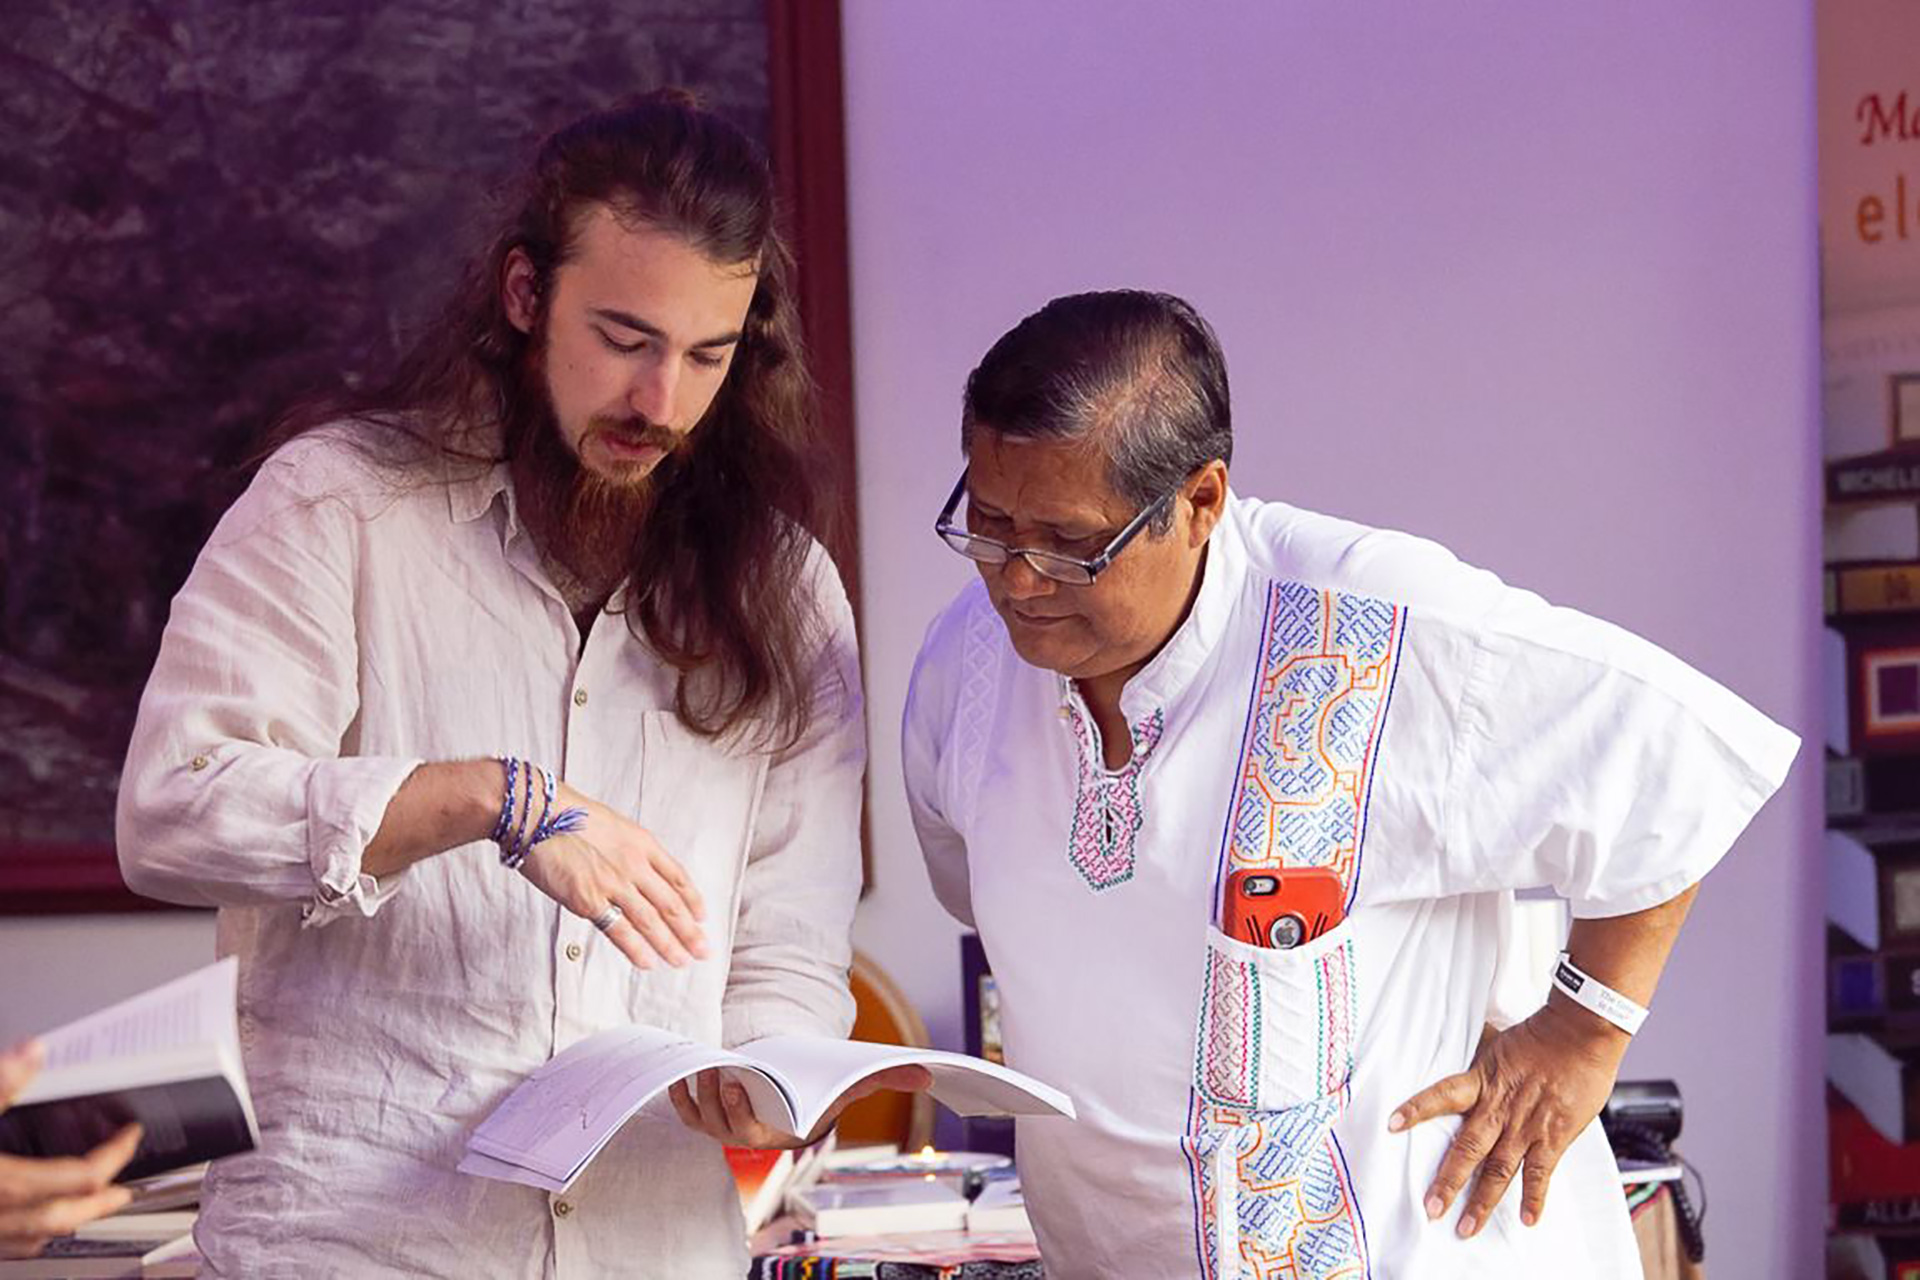 Myself with world-renowned Shaman, Don José Campos. Showing him my Ayahuasca coloring book.